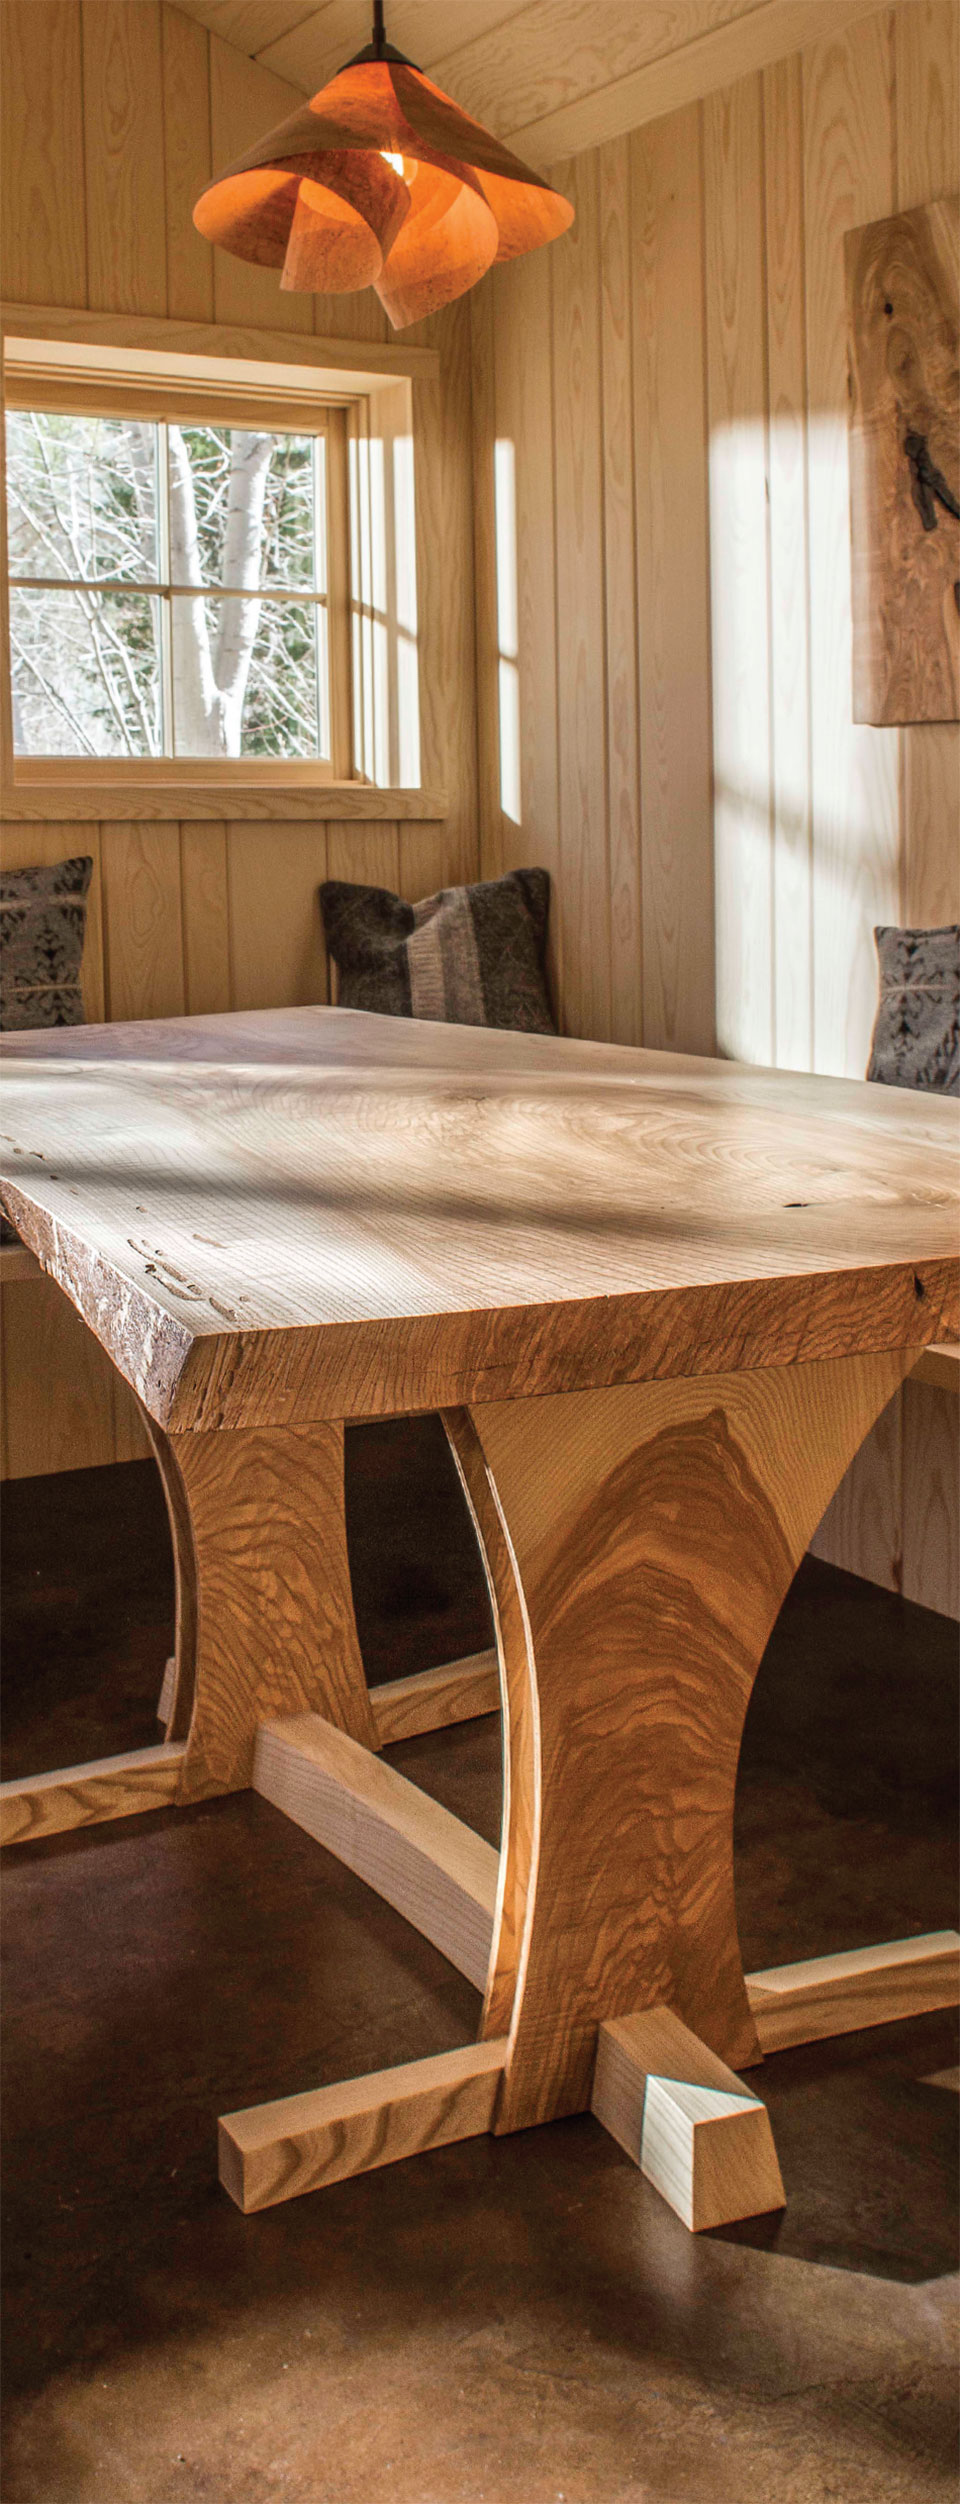 Working with Wood in the Modern West- Sun Valley Wood Table